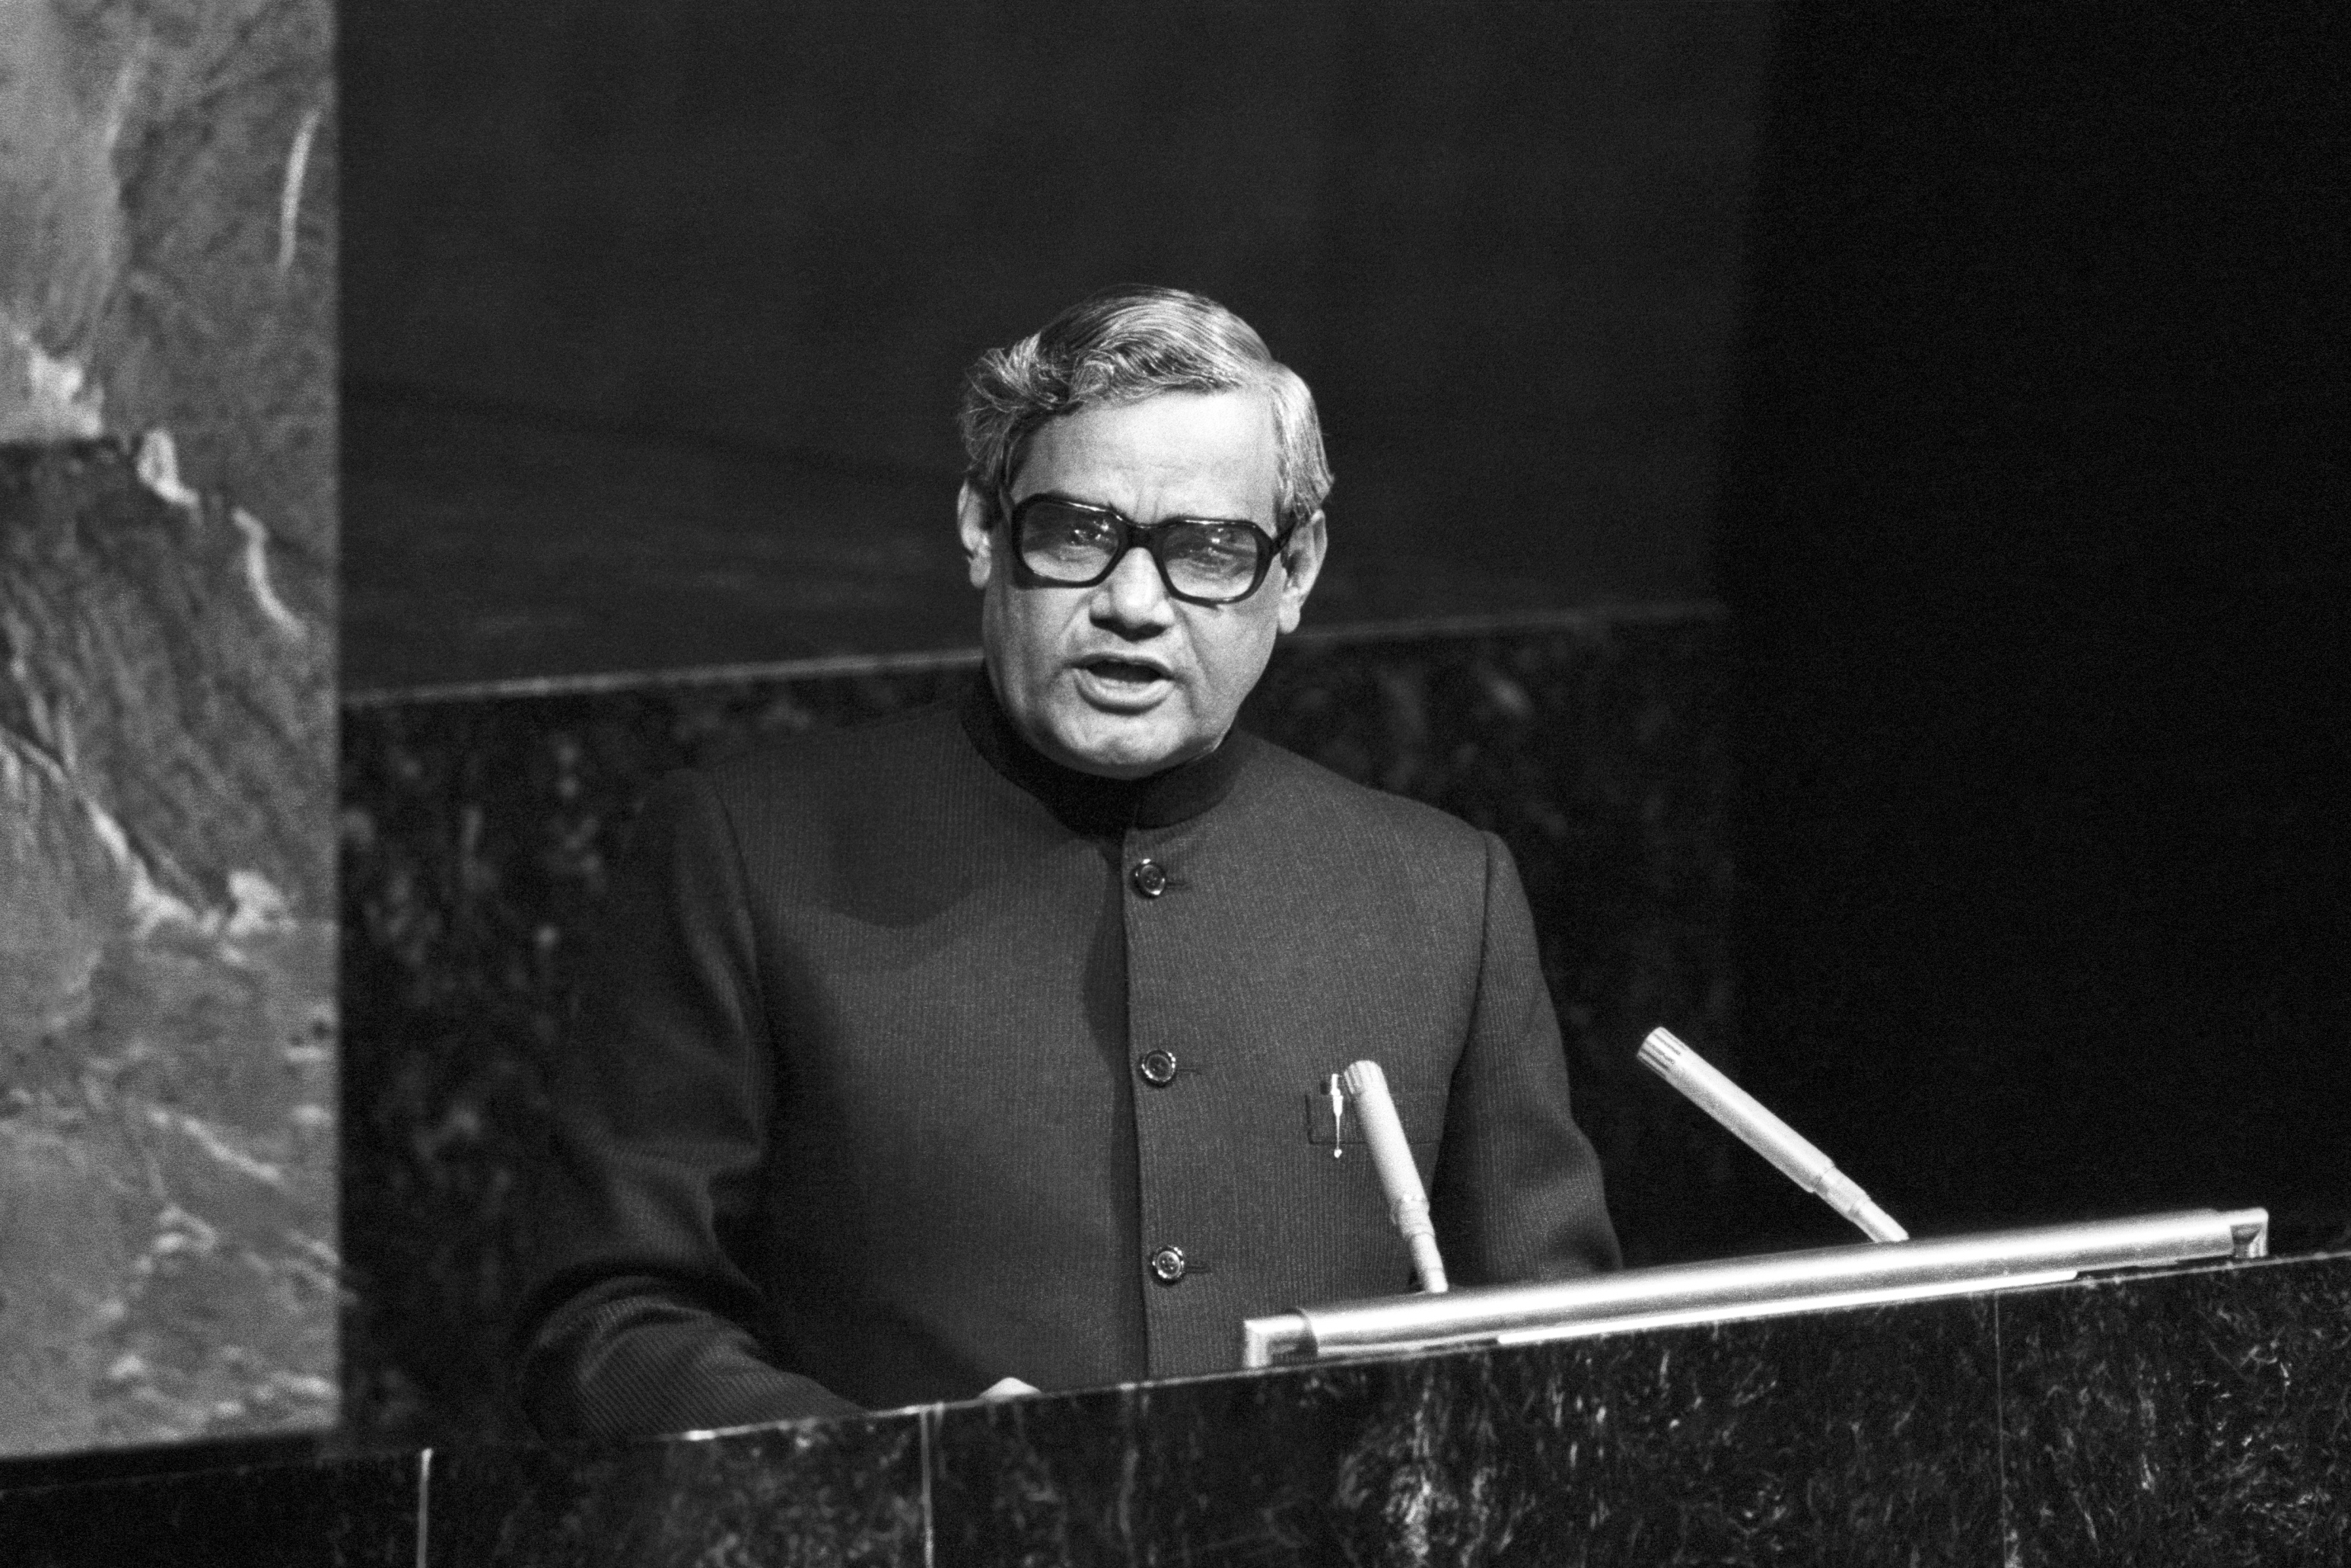 Atal Bihari Vajpayee, Minister for Foreign Affairs of India, is seen addressing the Assembly on 04 October 1977.